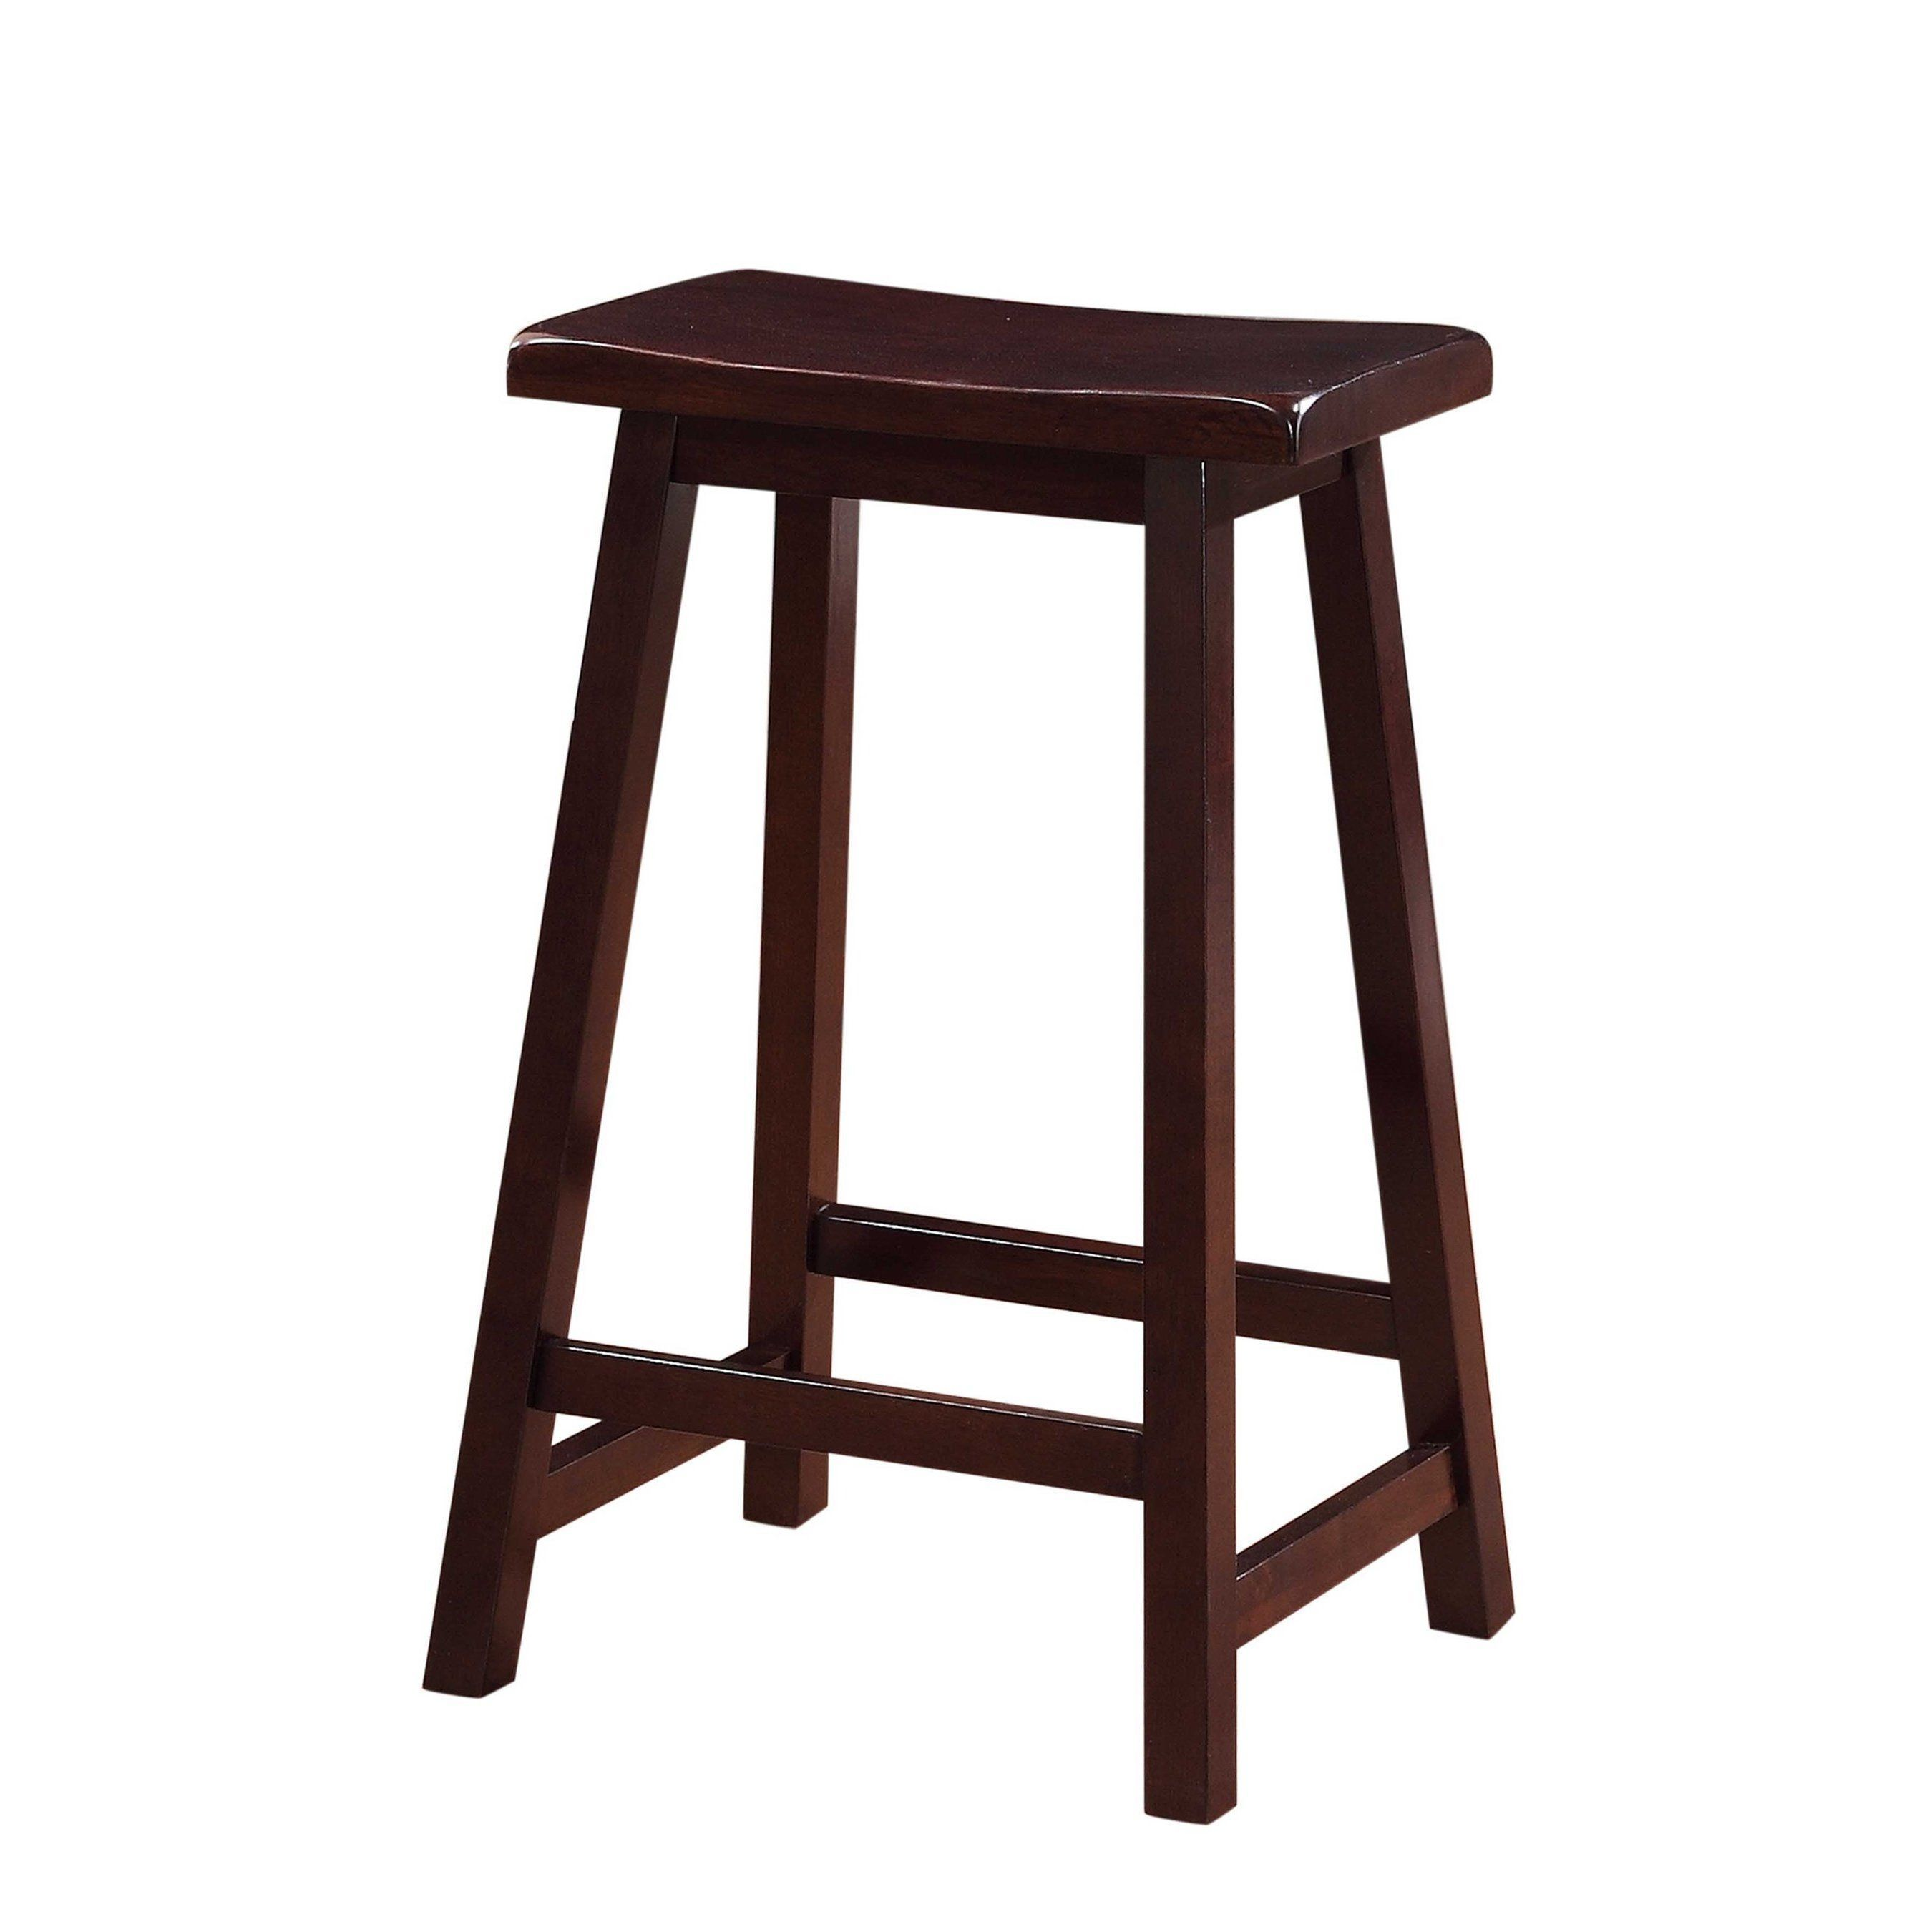 product deluxe home saddlestool estuary stool saddle